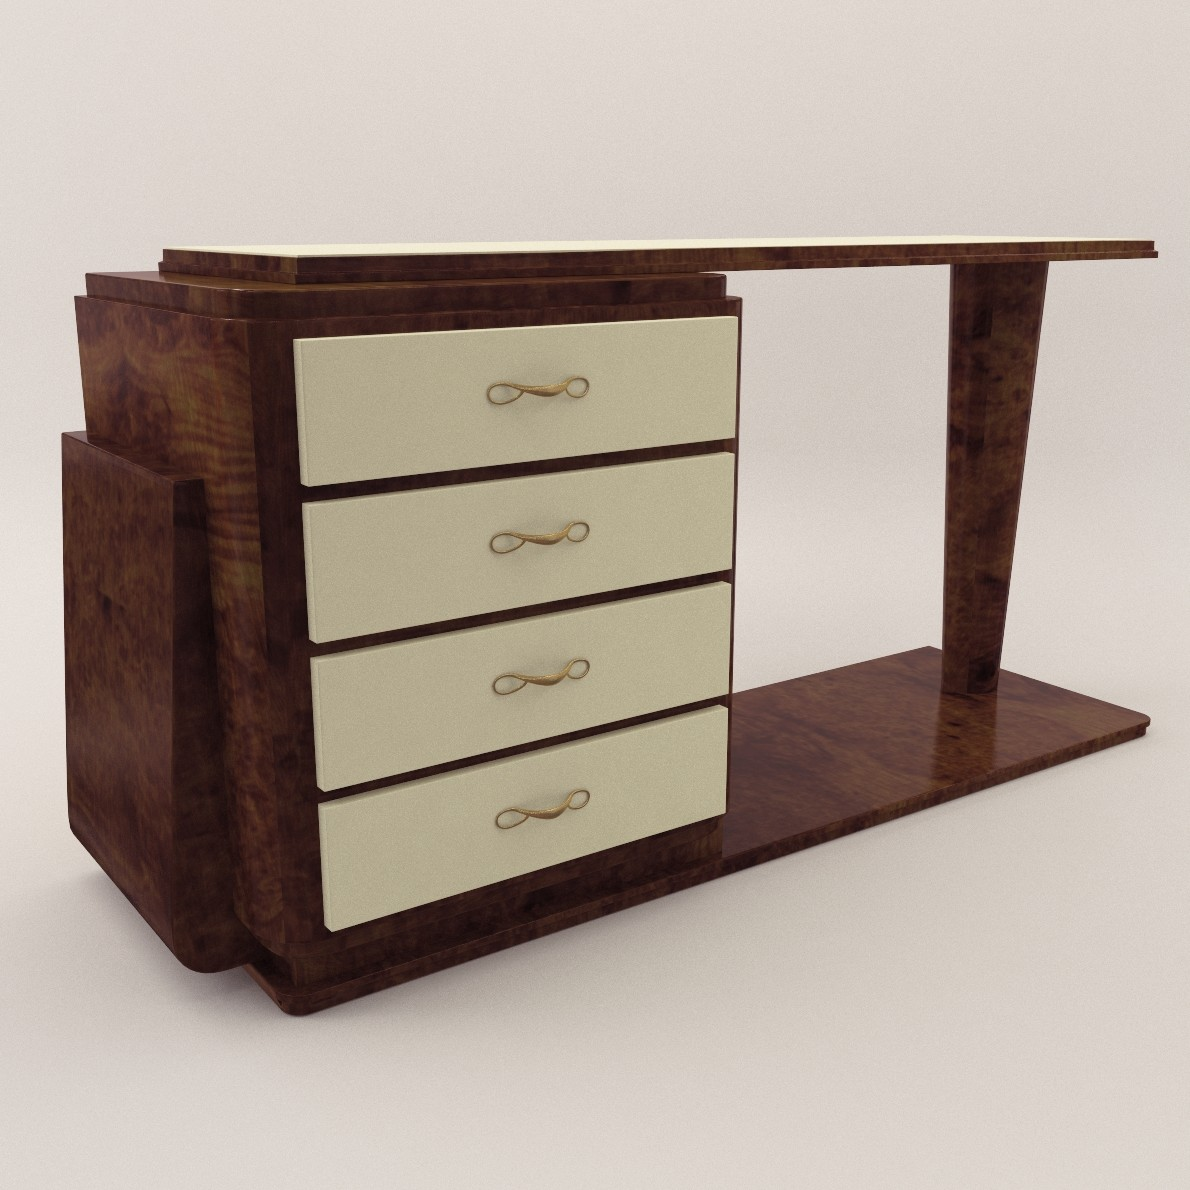 Art deco console table 3d realistic model artium3d art deco console table geotapseo Image collections